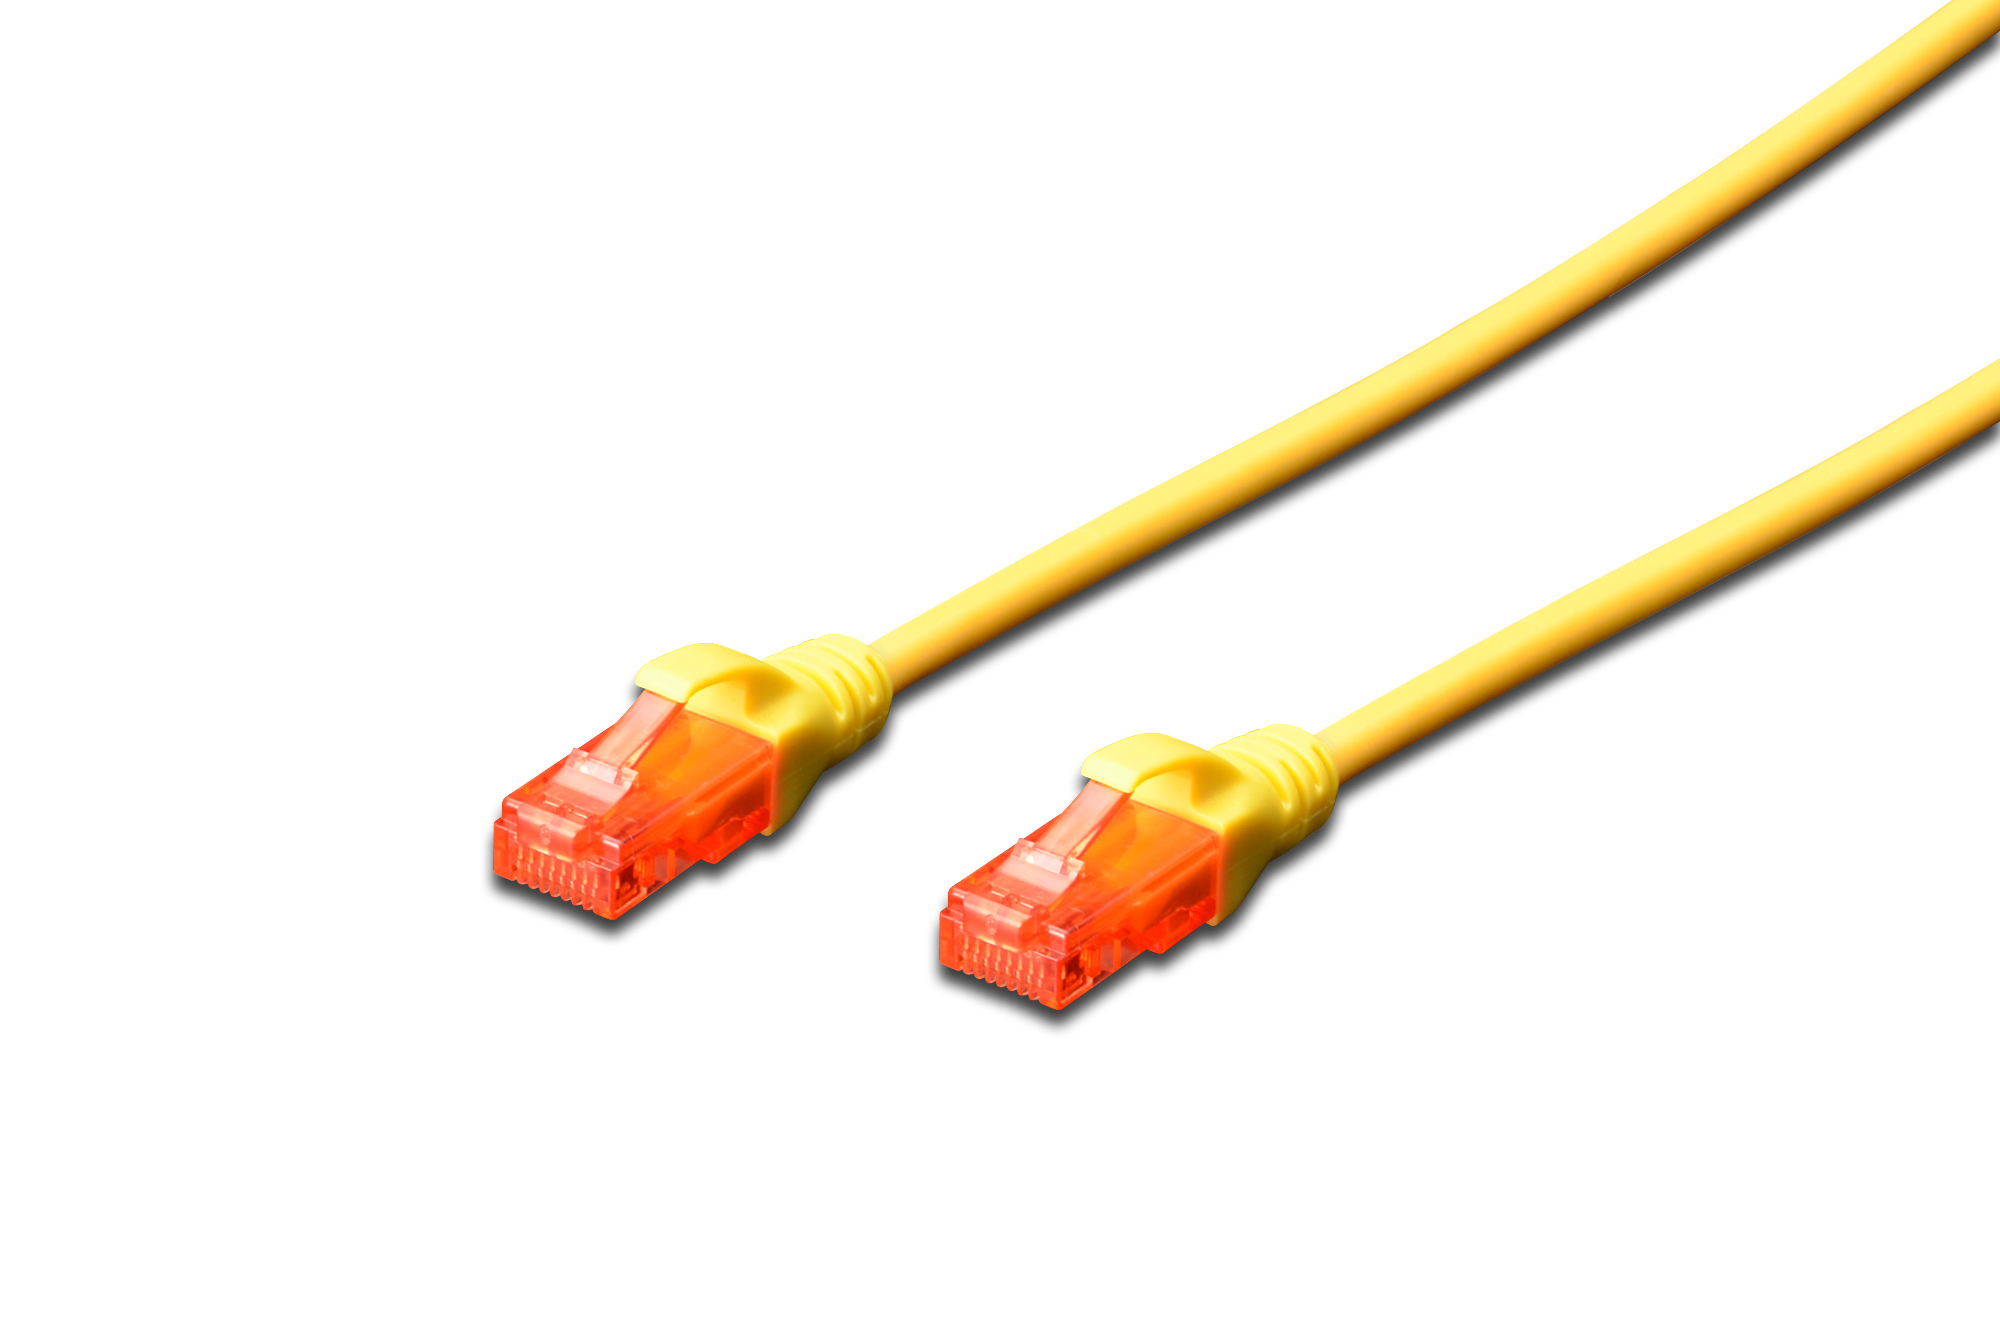 DIGITUS DK-1617-150/Y 15M CAT6 U/UTP NETWORKING CABLE (UTP) YELLOW